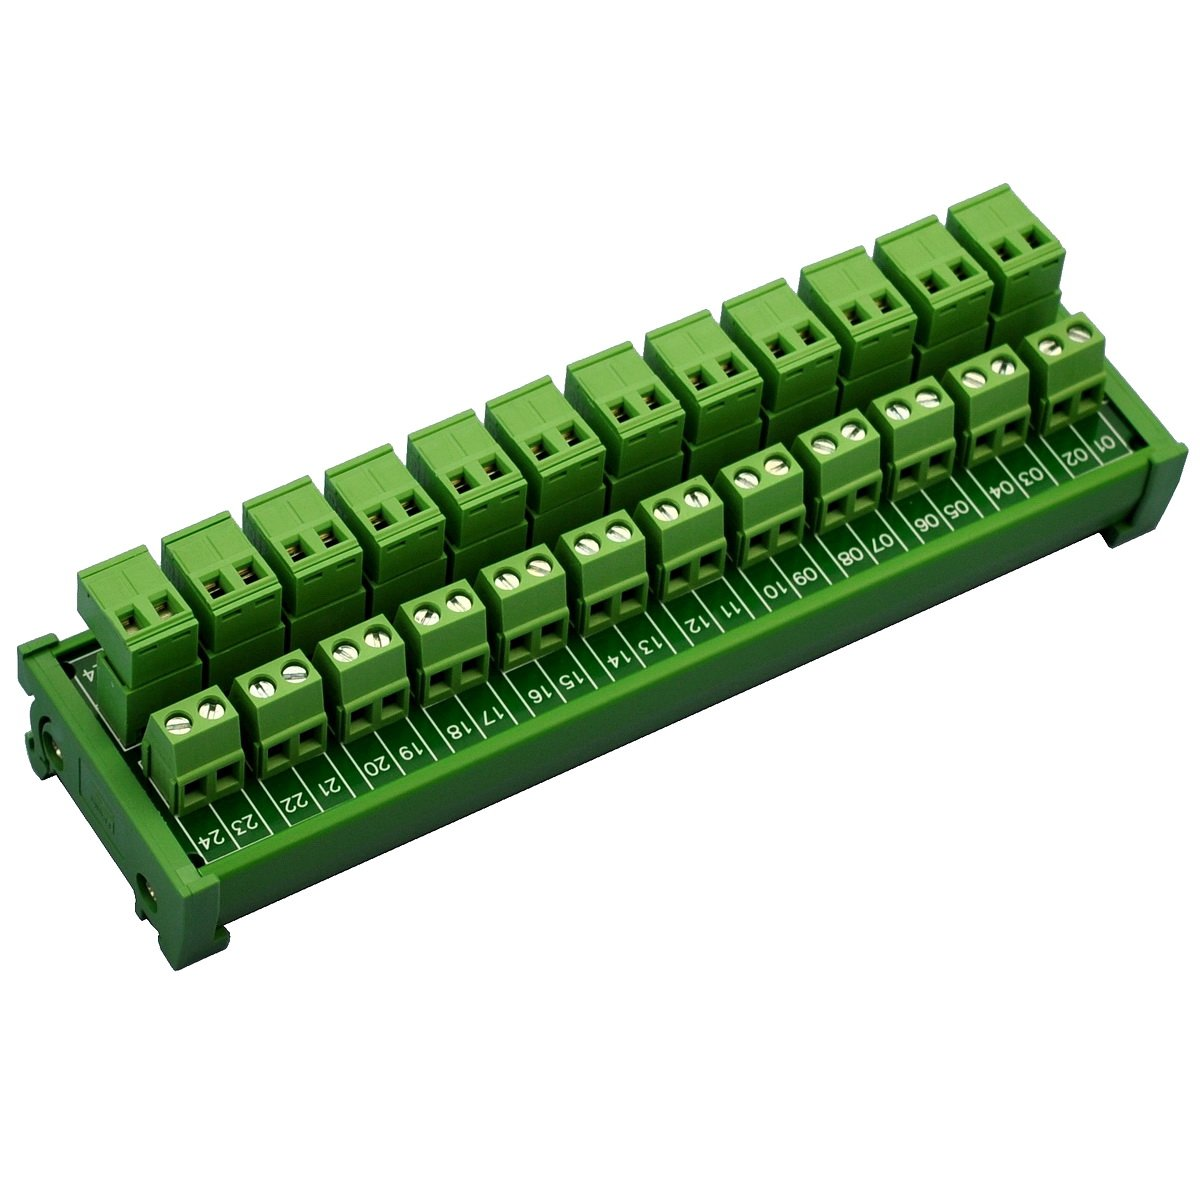 Electronics-Salon DIN Rail Mount Pluggable 12x2 Position 10A/300V Screw Terminal Block Distribution Module. (Top Wire Connects)